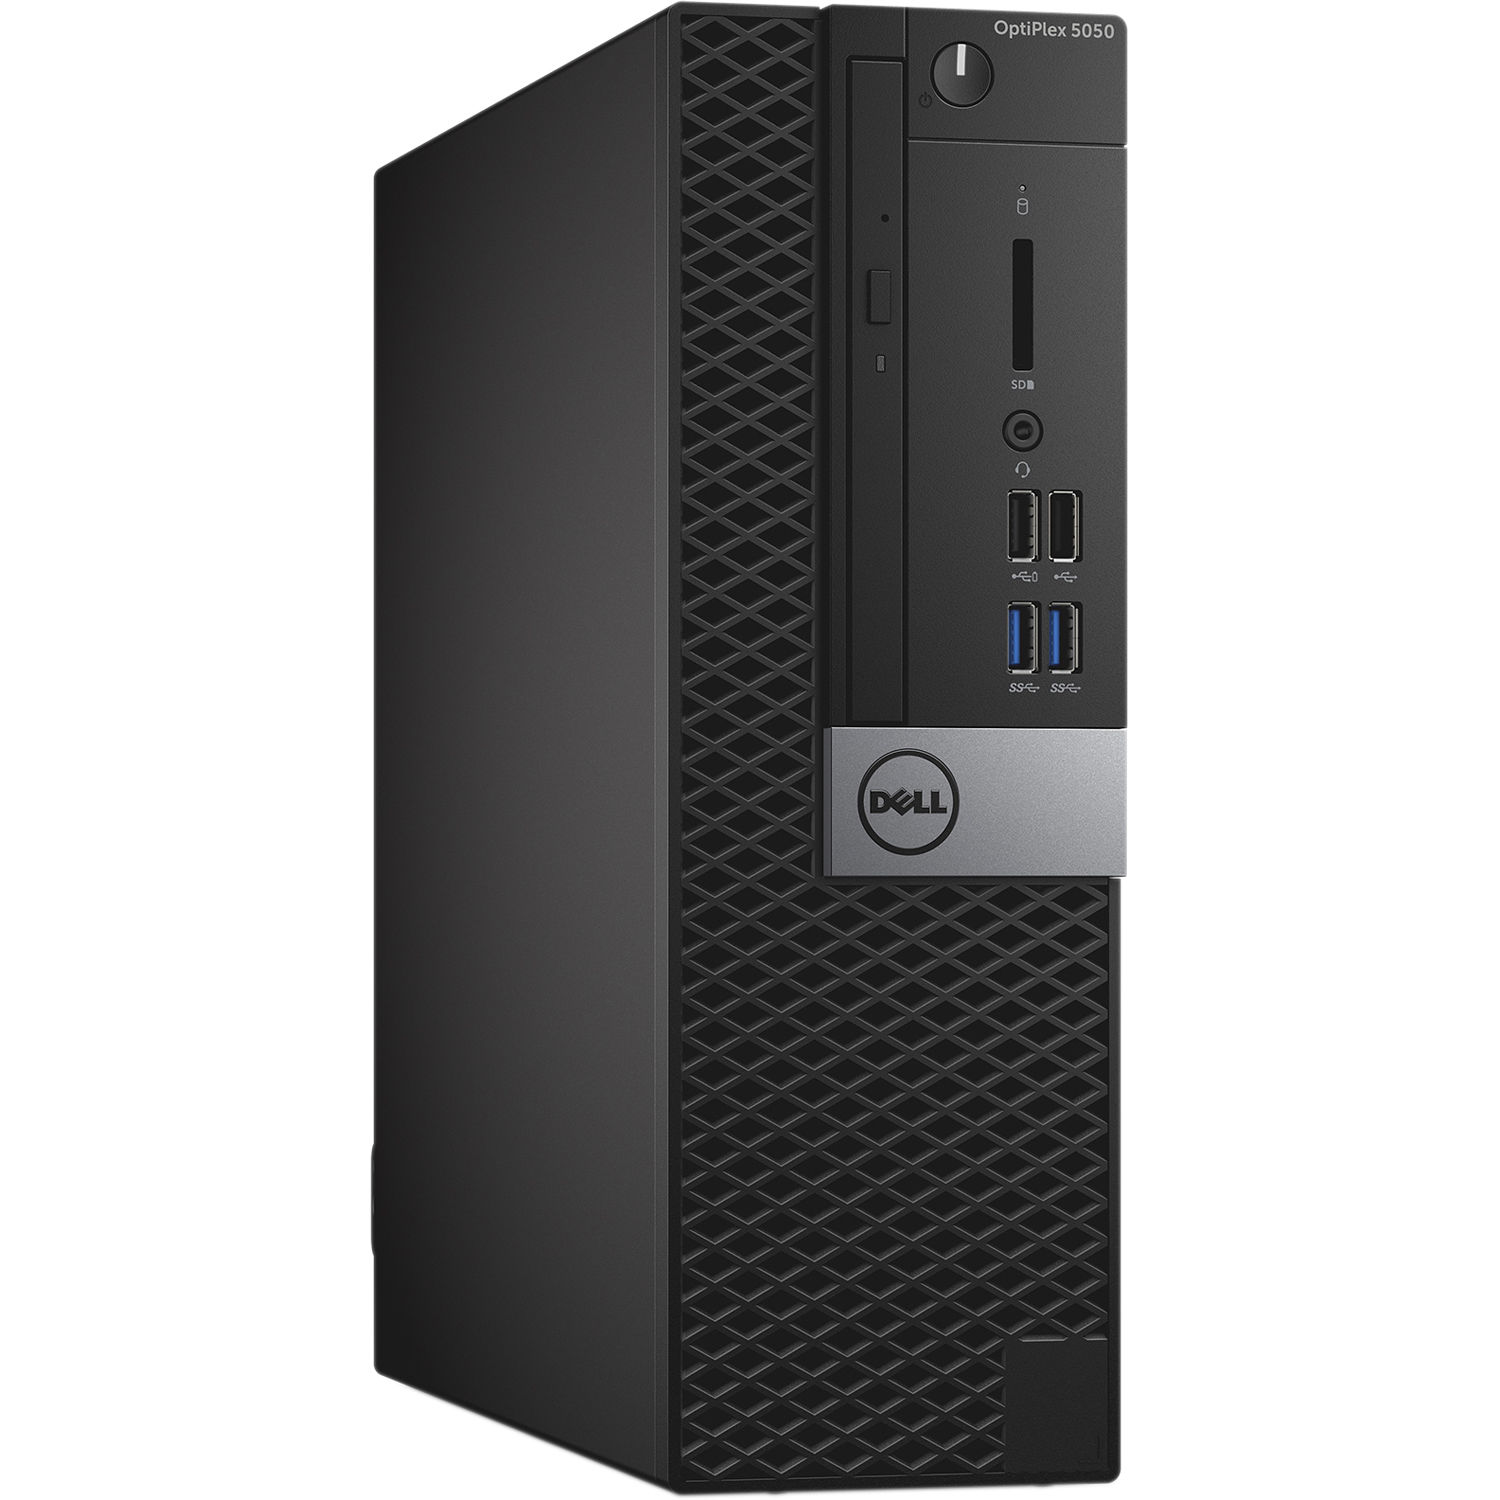 DELL OPTIPLEX 360 ETHERNET CONTROLLER DRIVERS FOR WINDOWS 7